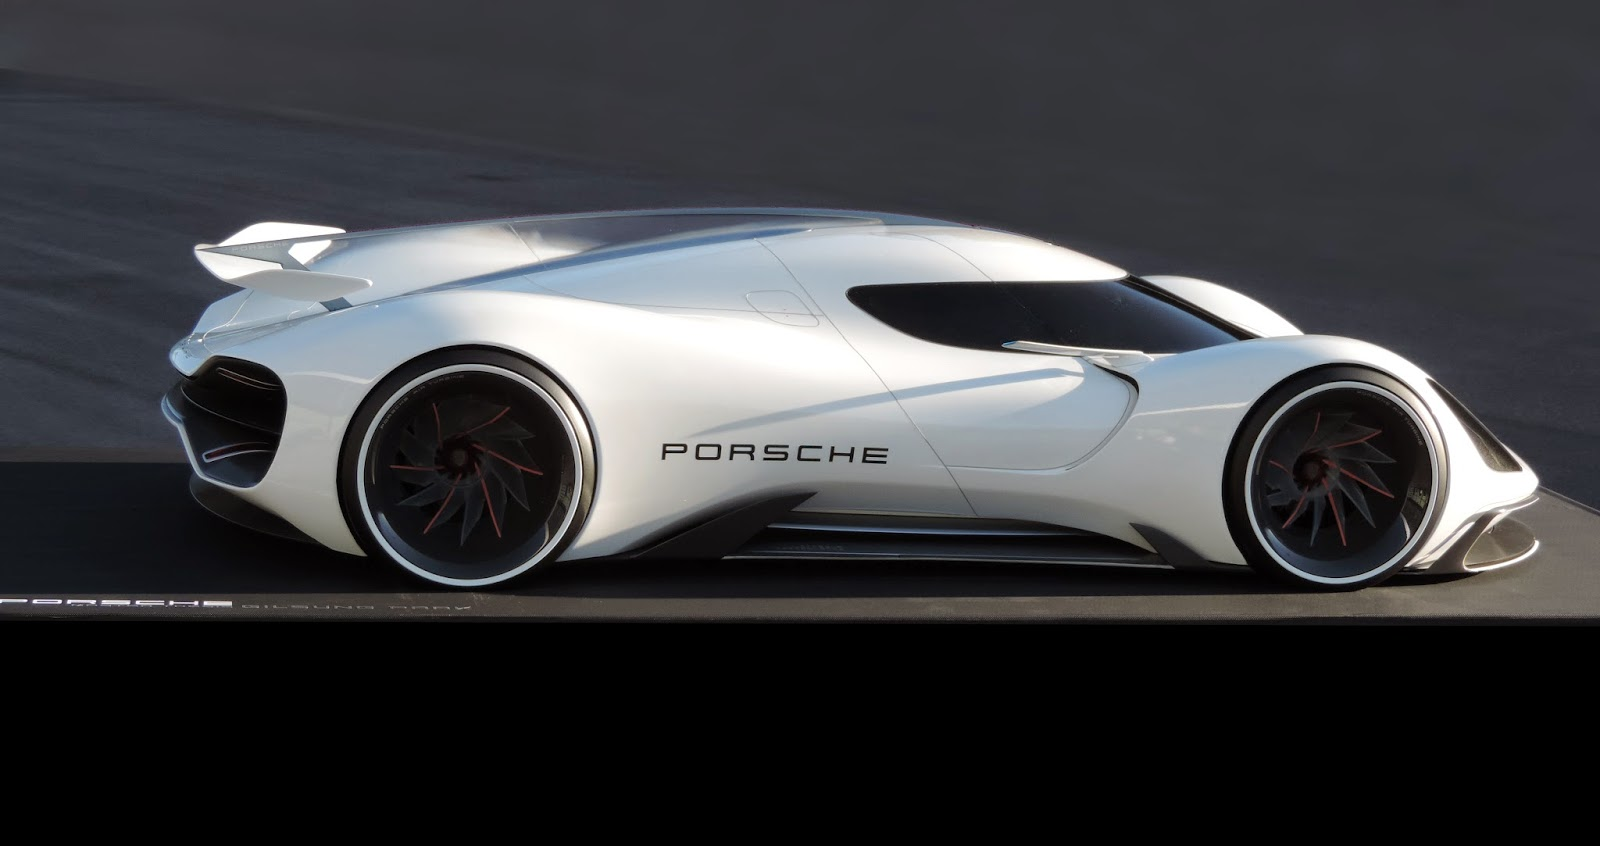 Porsche Electric Le Mans 2035 Prototype Looks Believable And Makes Perfect Sense Autoevolution